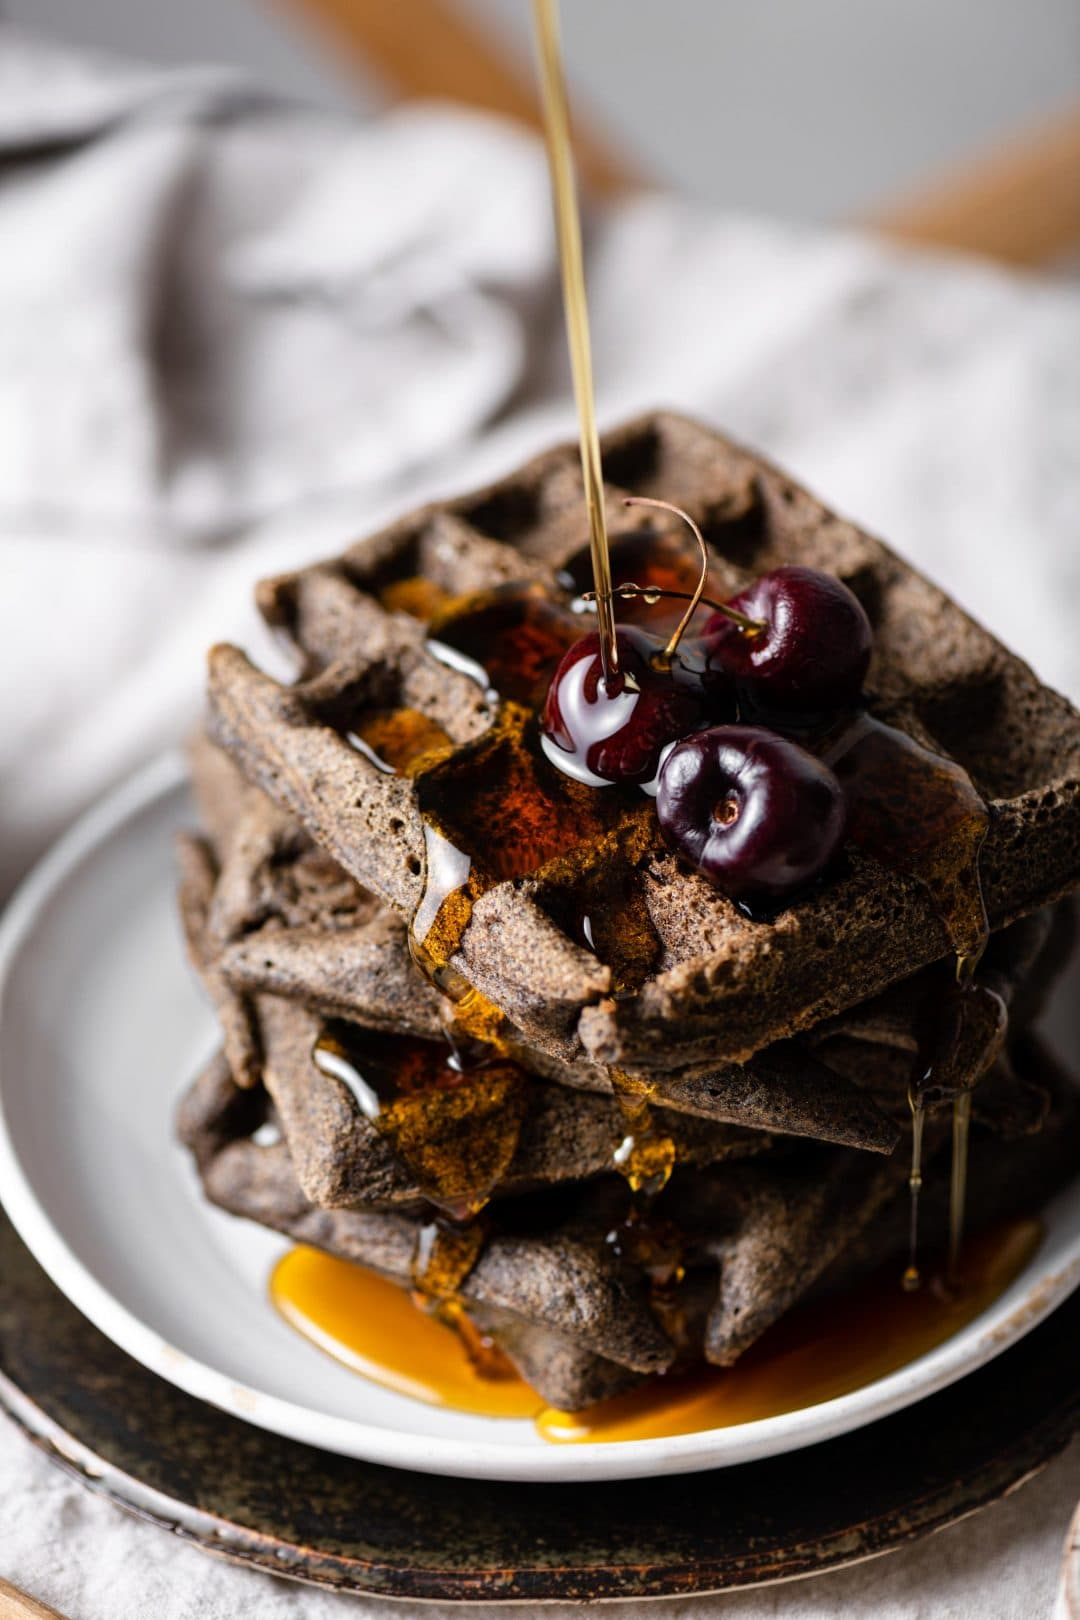 Buckwheat Waffles topped with cherries and maple syrup